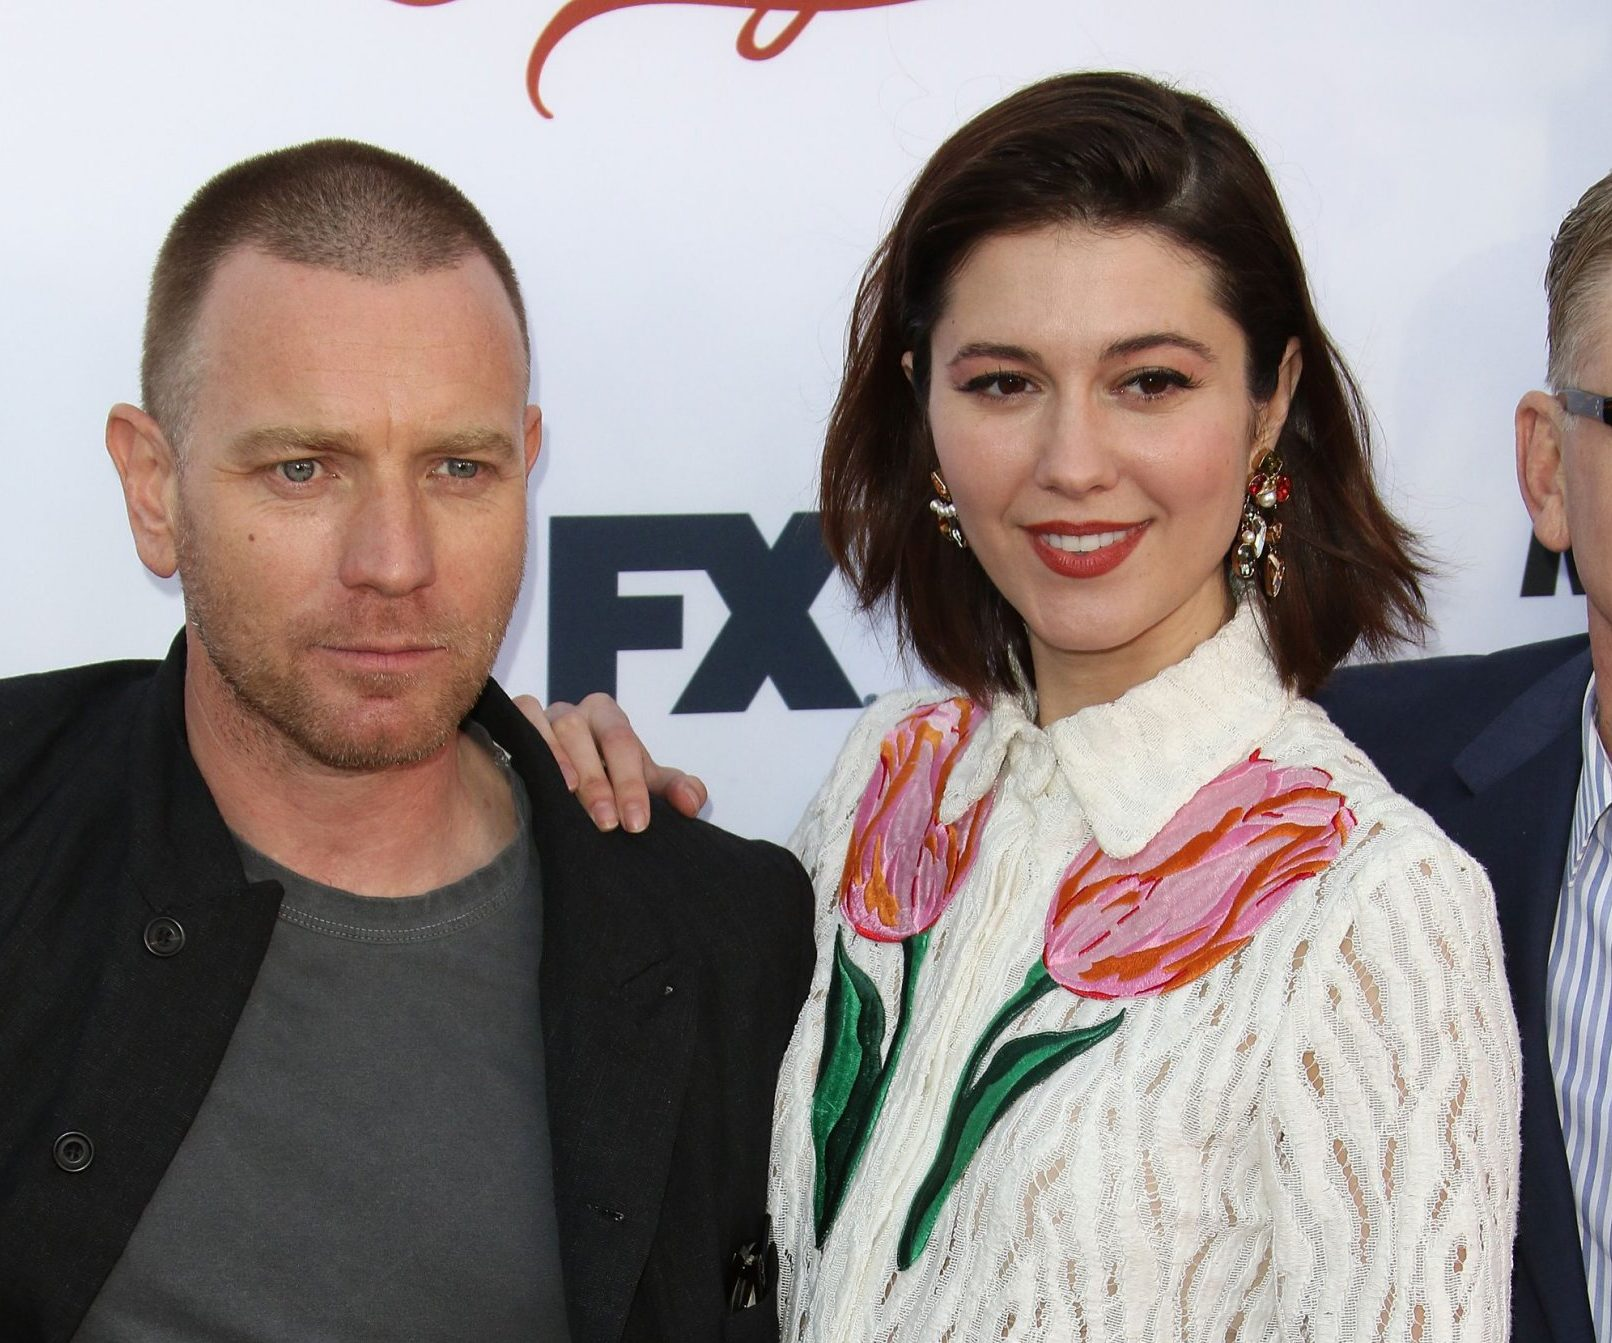 Ewan McGregor confirms romance with Mary Elizabeth Winstead is back on despite claims she dumped him